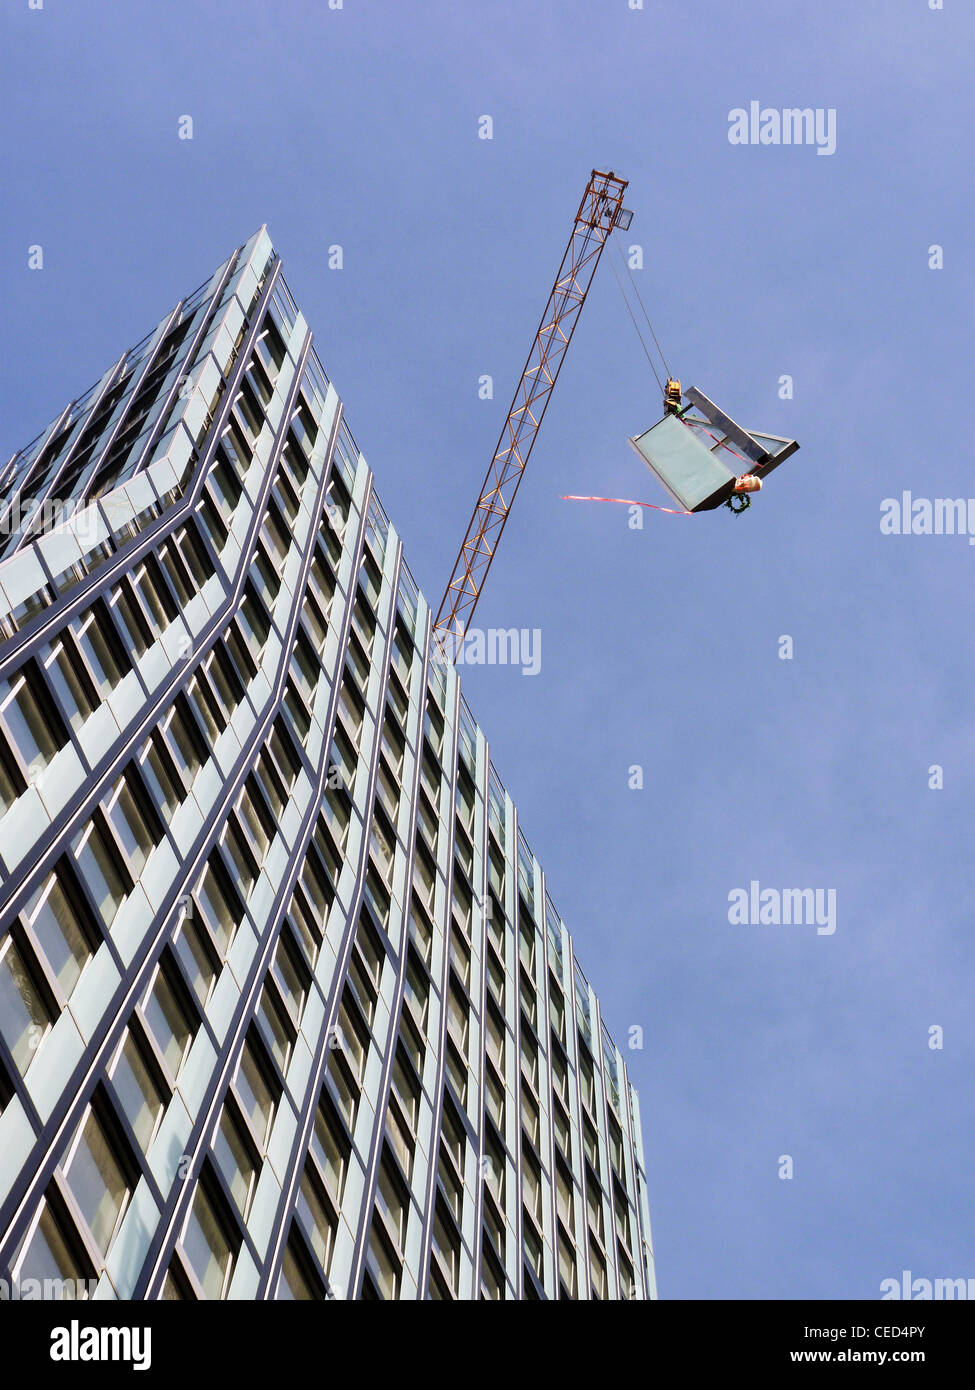 Facade construction work at a high rise building in Hamburg - Stock Image